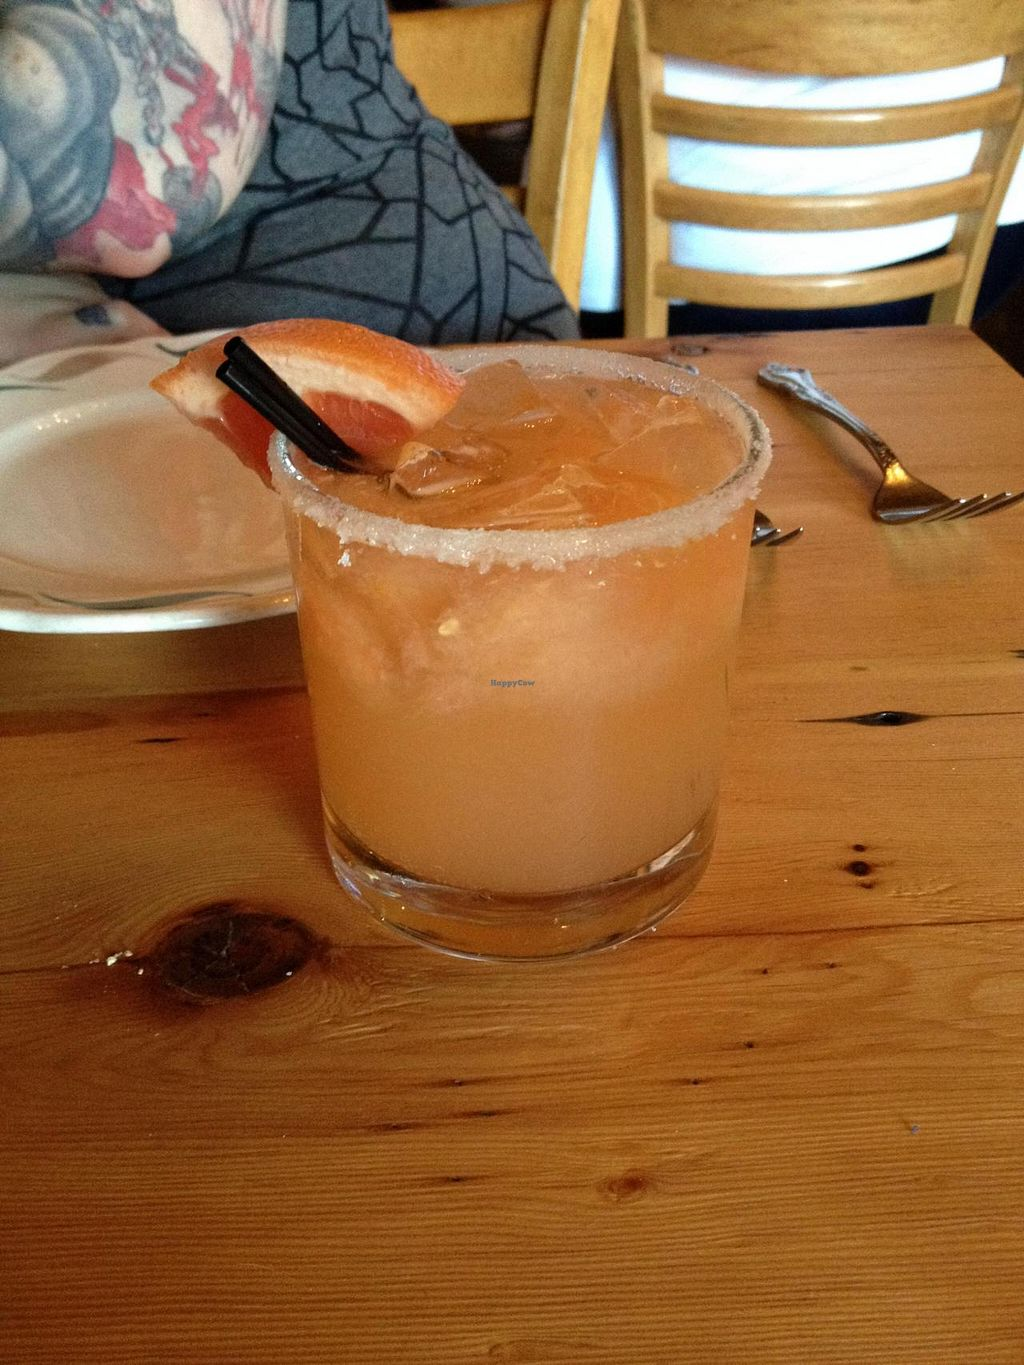 "Photo of CLOSED: Portobello Vegan Trattoria  by <a href=""/members/profile/Posi%20Britt"">Posi Britt</a> <br/>Sea Shepherd mocktail! <br/> June 25, 2014  - <a href='/contact/abuse/image/17009/72762'>Report</a>"